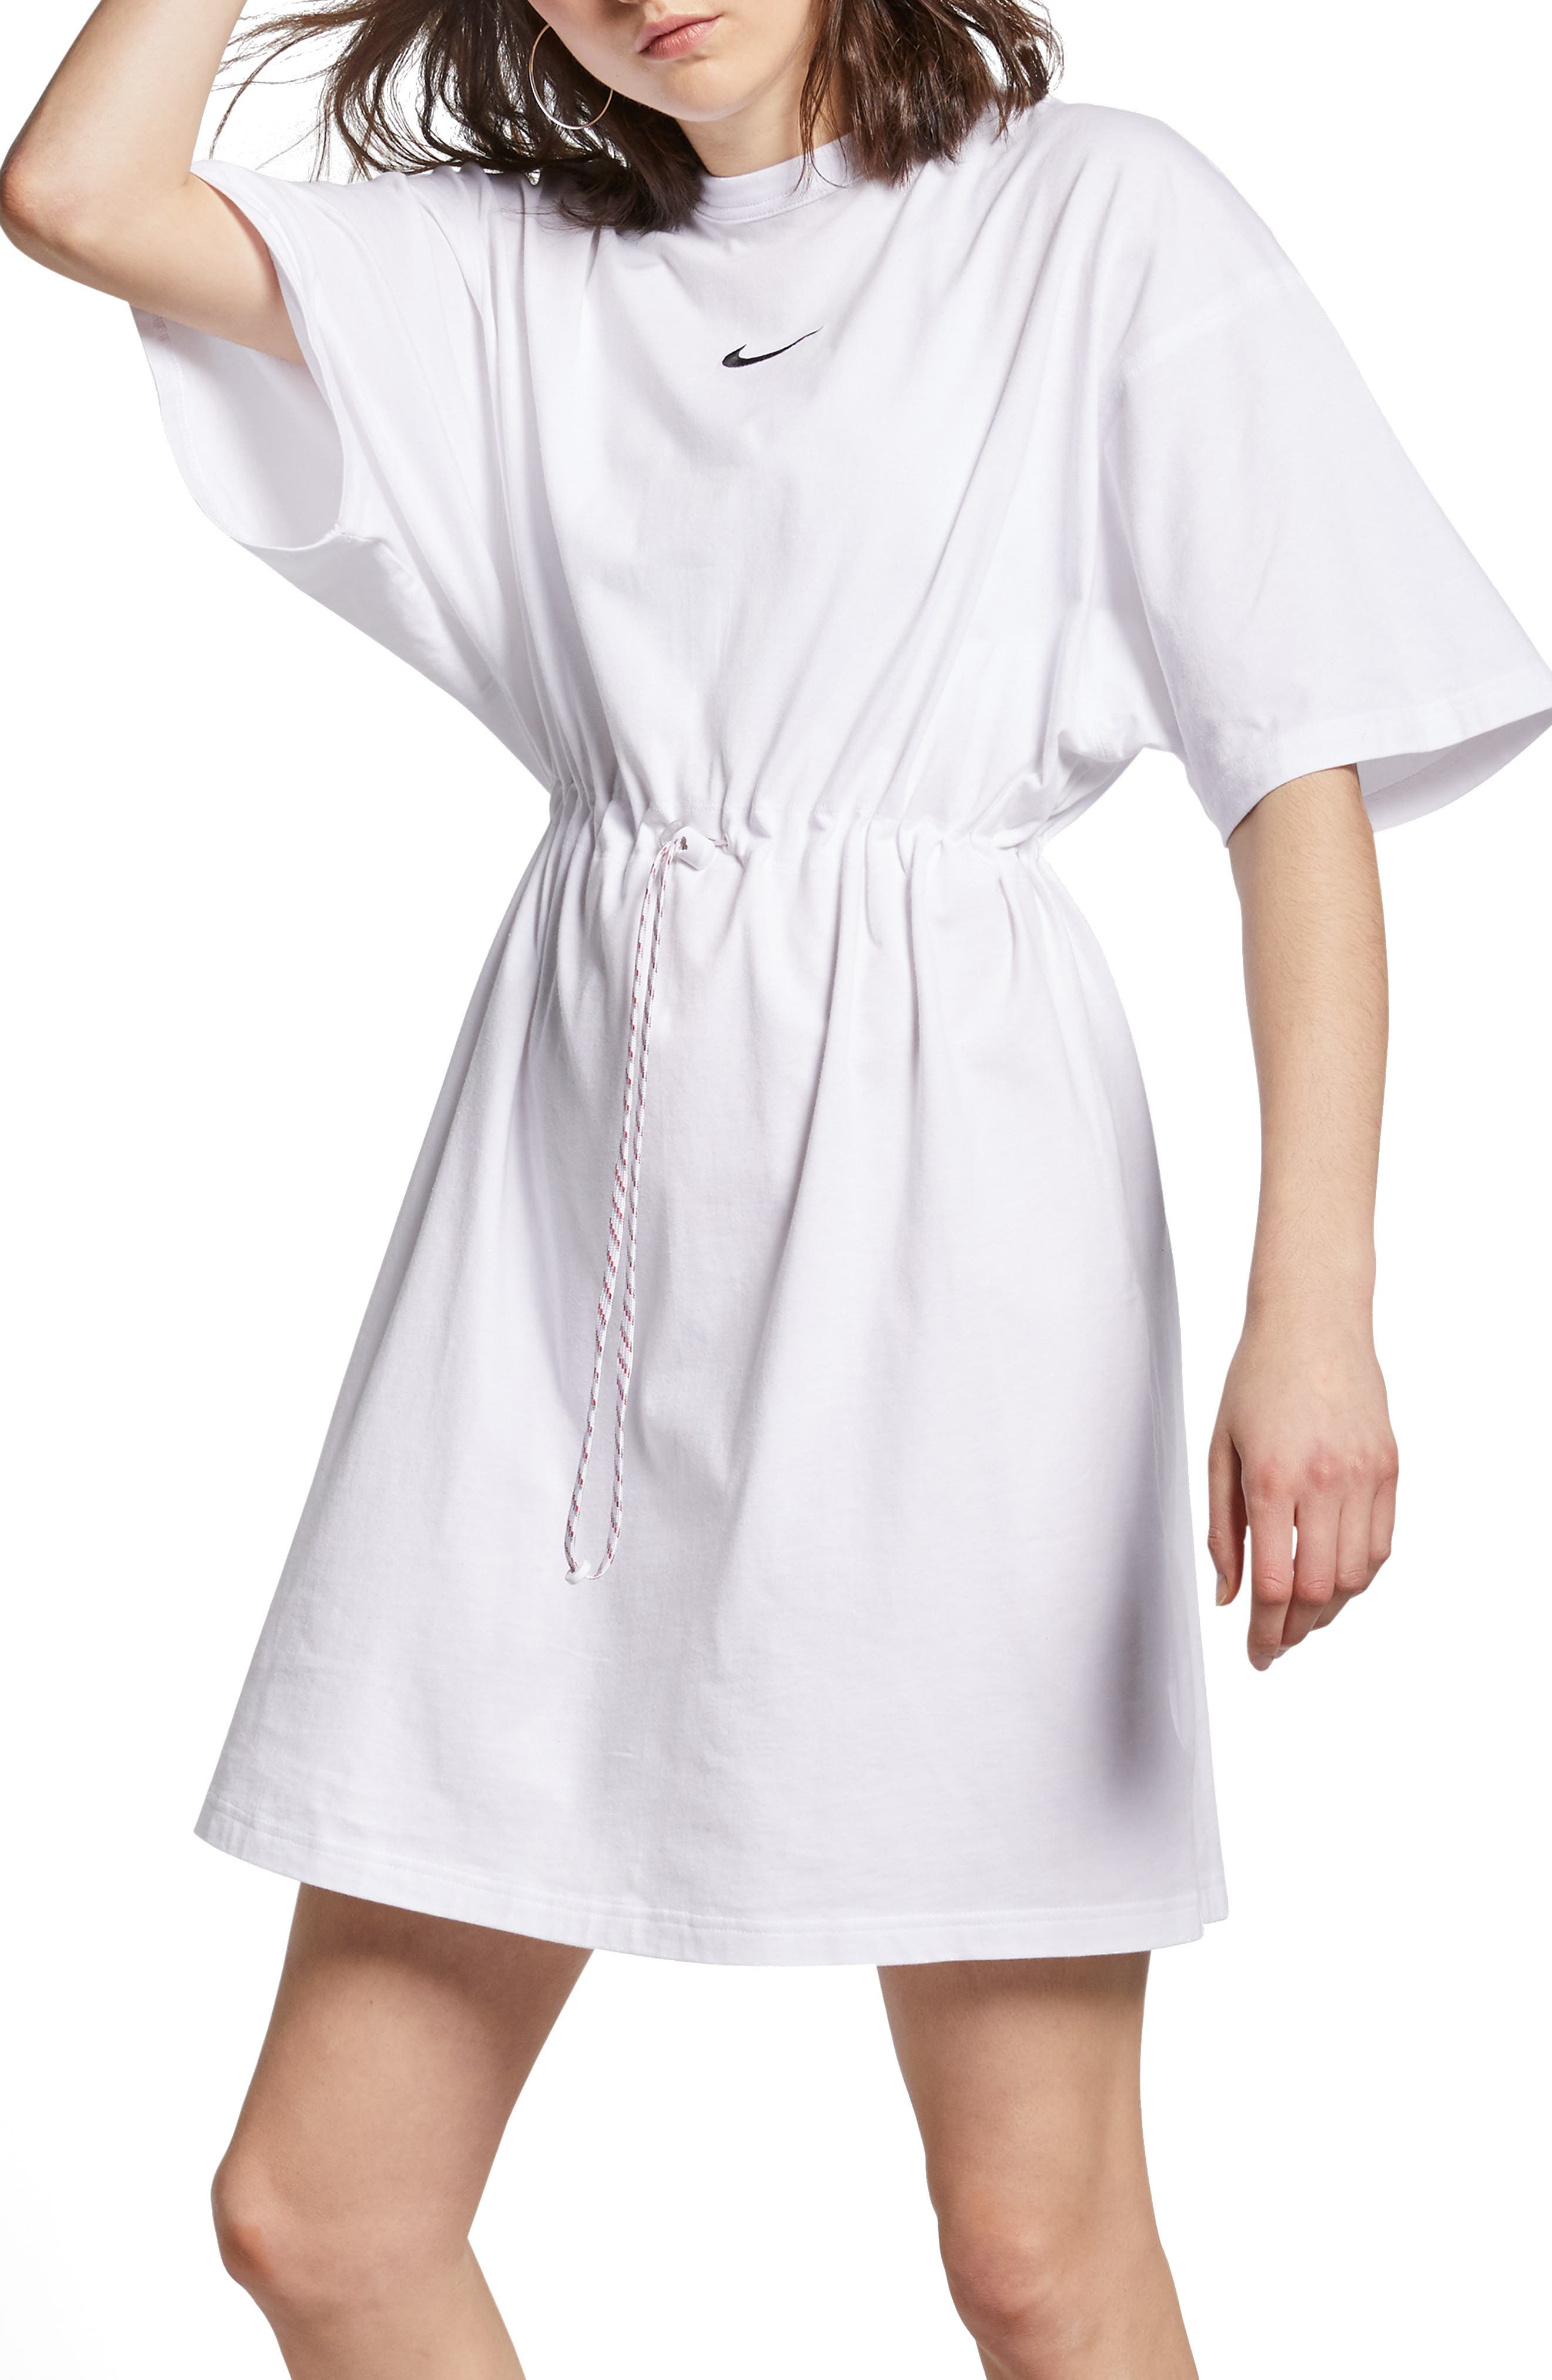 Nike Nikelab Collection Dress, White